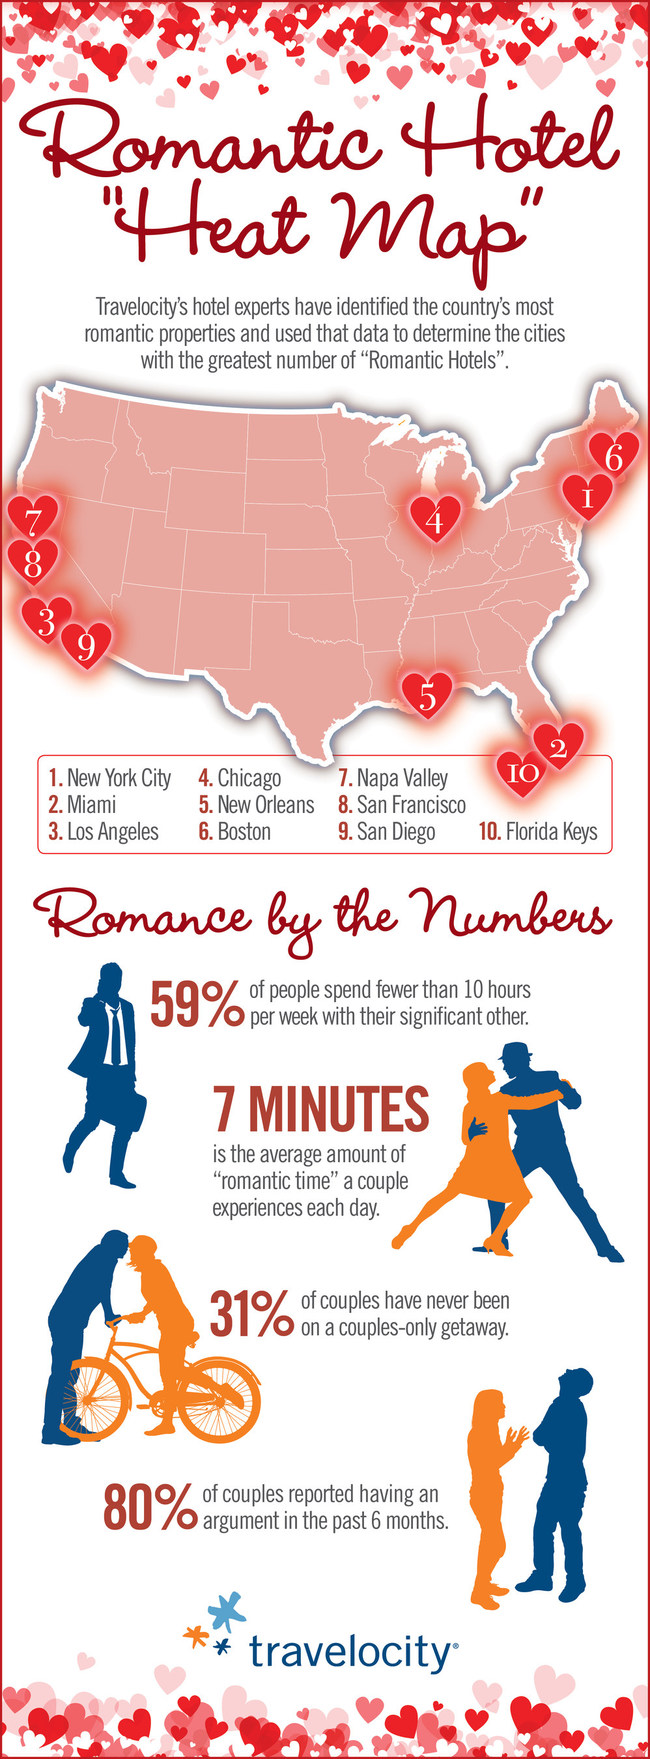 "Romantic Hotel Heat Map - What US cities have the most romantic hotels, and how many minutes of ""romantic time"" does the average couple experience per day?"